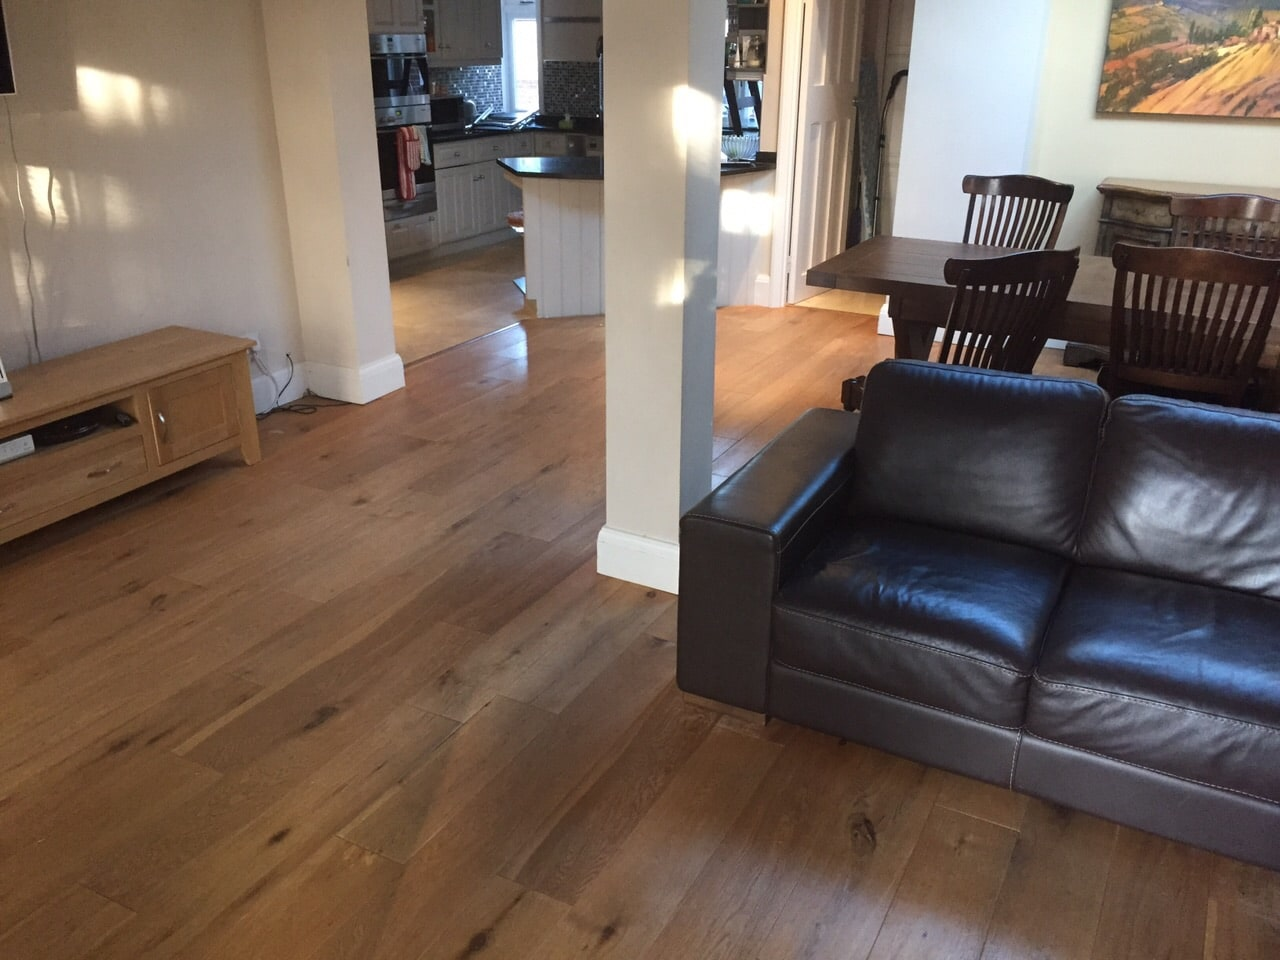 Floor sanding london dogs and hardwood floors for Hardwood floors with dogs